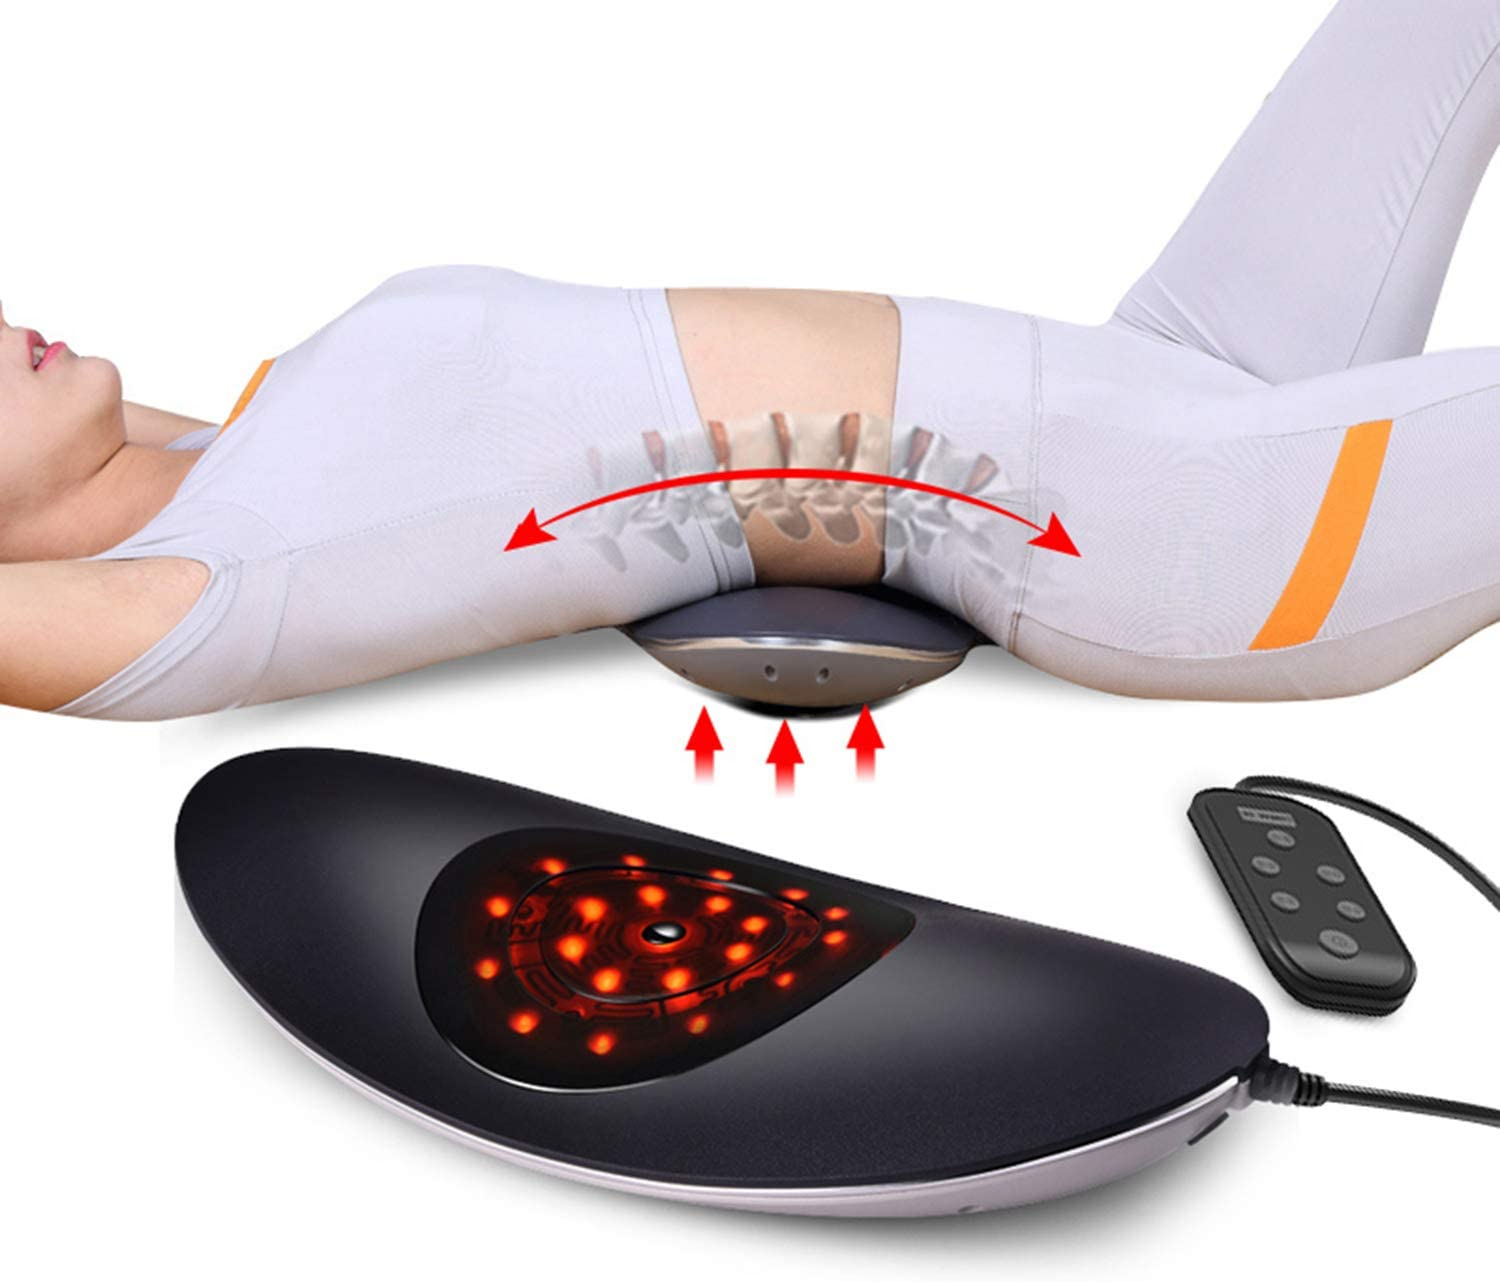 Back Stretcher for Lower Back Pain Relief with Vibrating and Heating Massage Home System Lumbar Traction Device Relieves Back Stiffness and Discomfort. Best Gift for Men Women Father & Mother